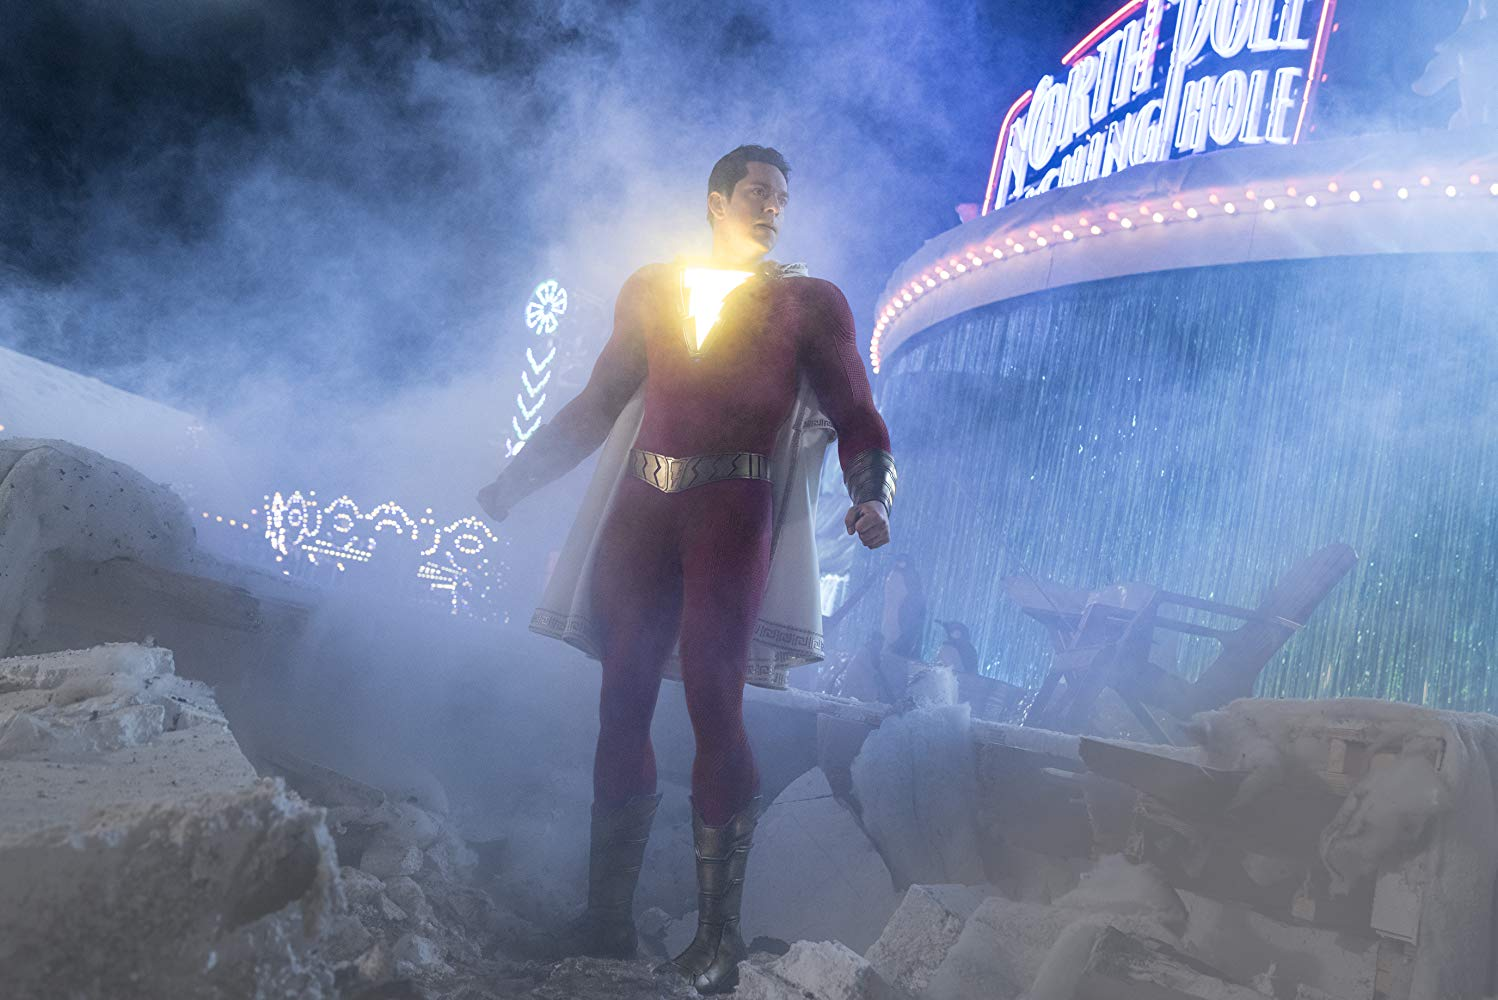 Article: SHAZAM! Is The Superhero We Need